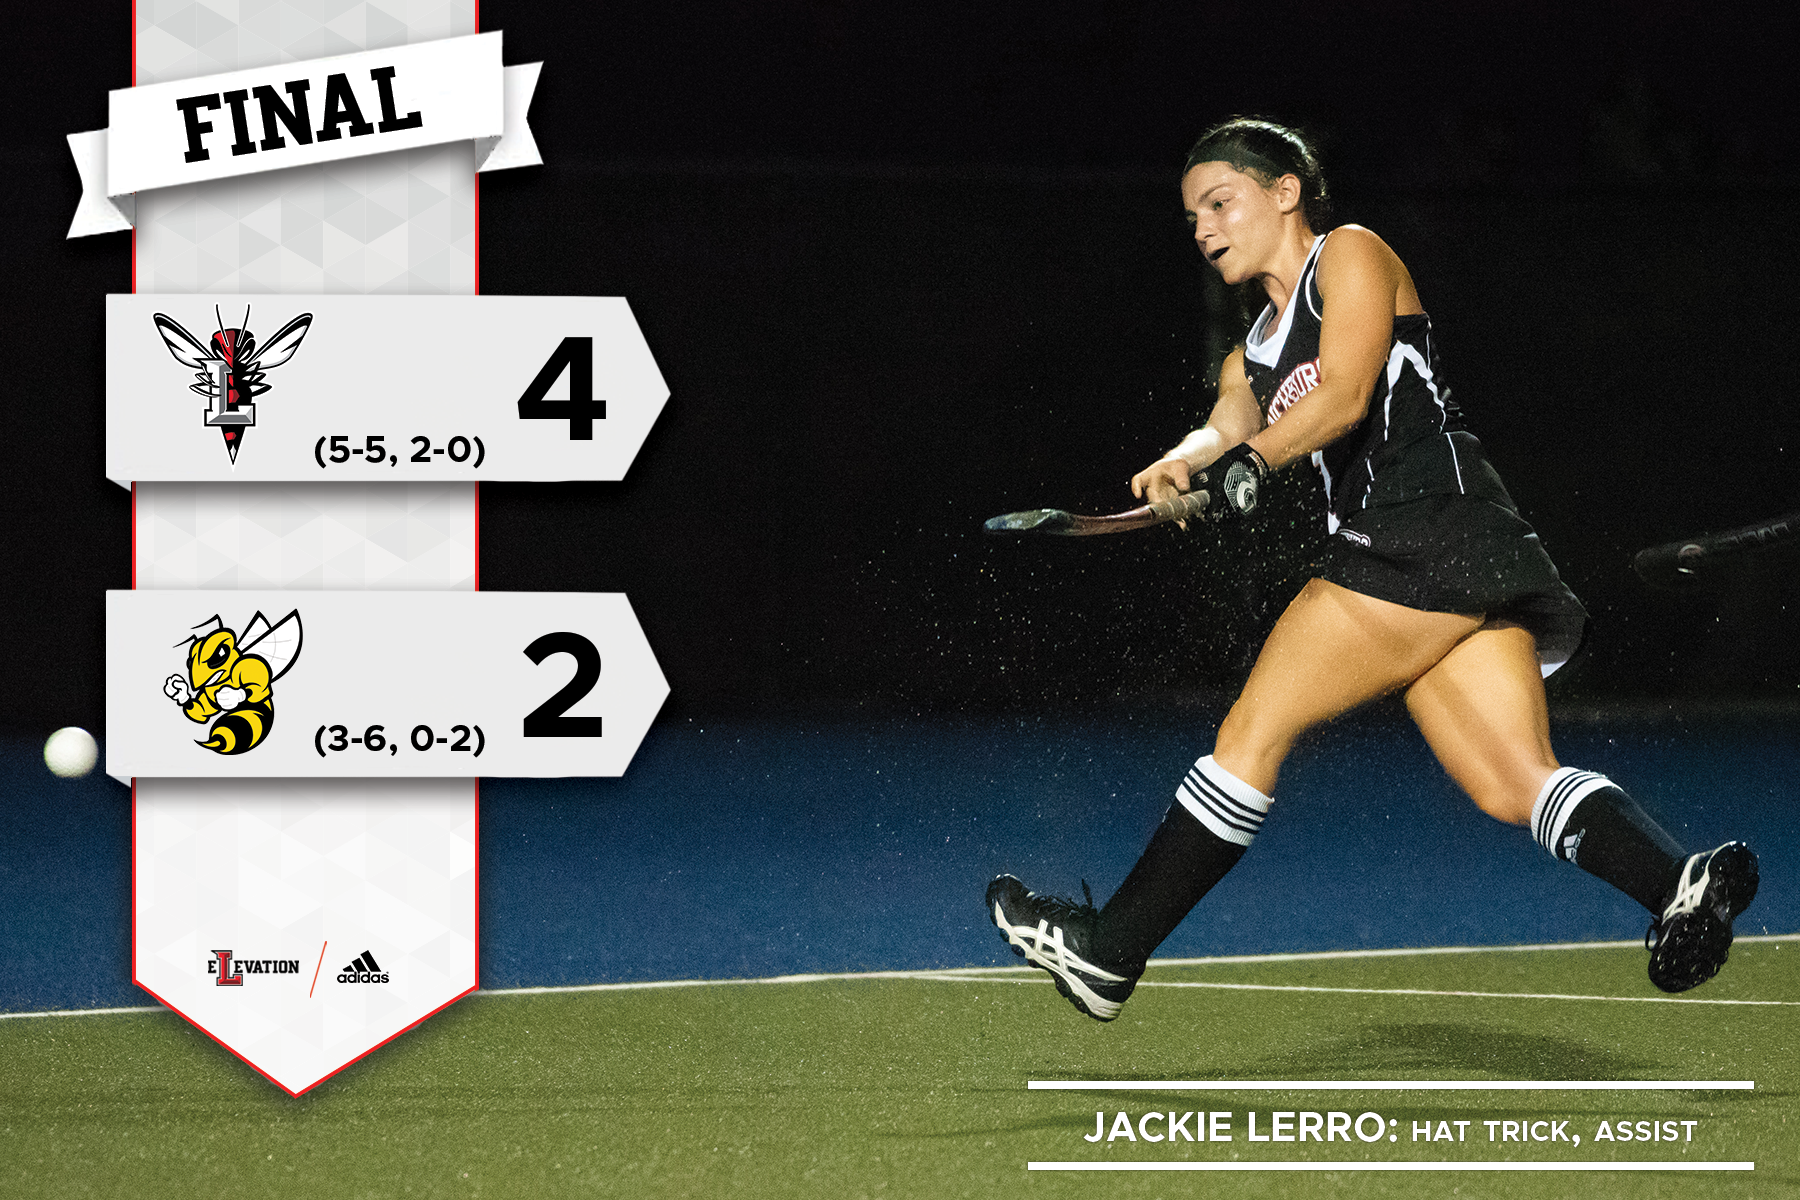 Jackie Lerro hits a field hockey ball. Graphic showing 4-2 final score and team logos.